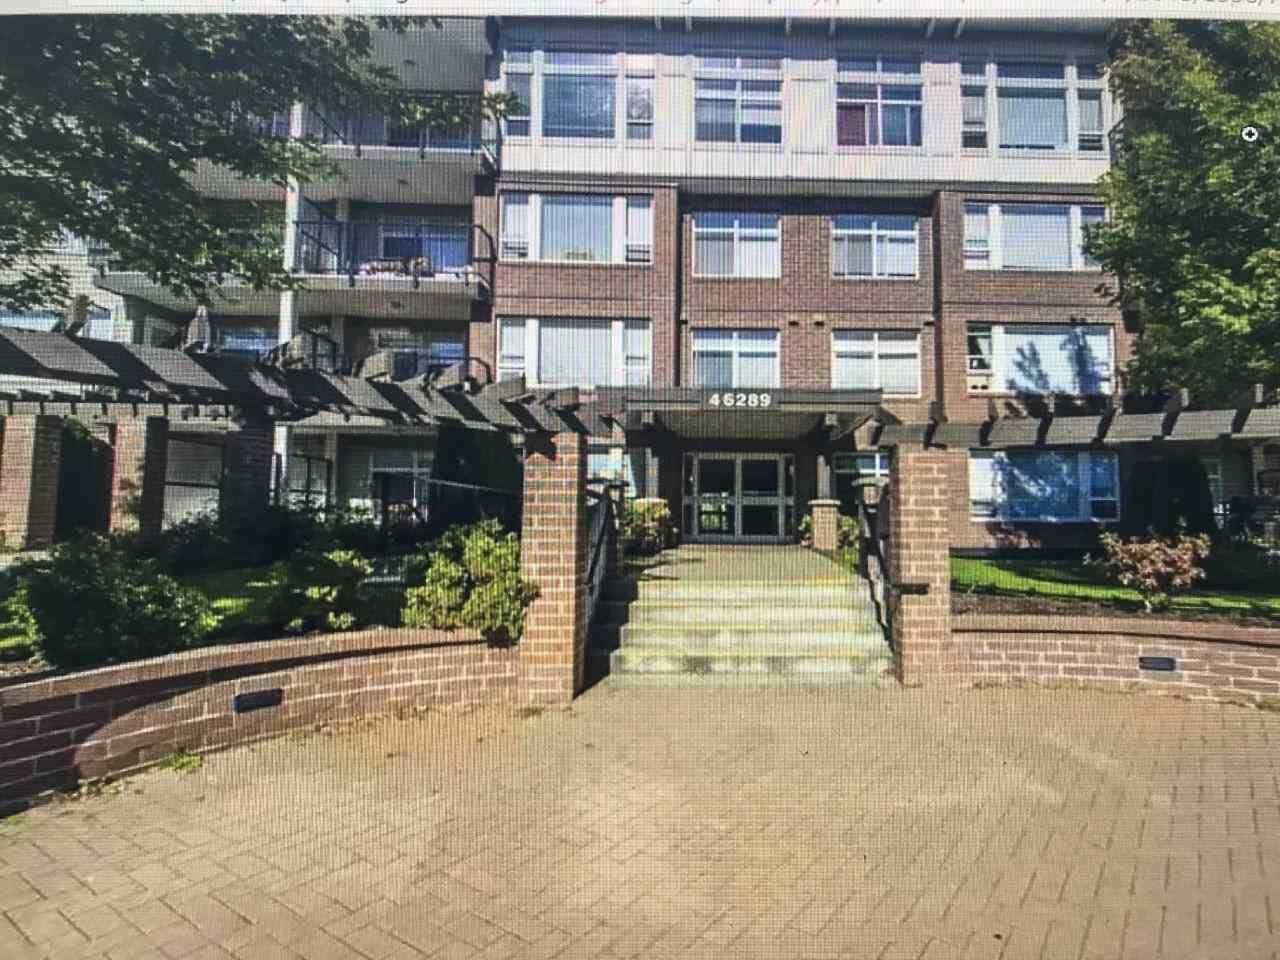 """Main Photo: 103 46289 YALE Road in Chilliwack: Chilliwack E Young-Yale Condo for sale in """"NEWMARK"""" : MLS®# R2349726"""